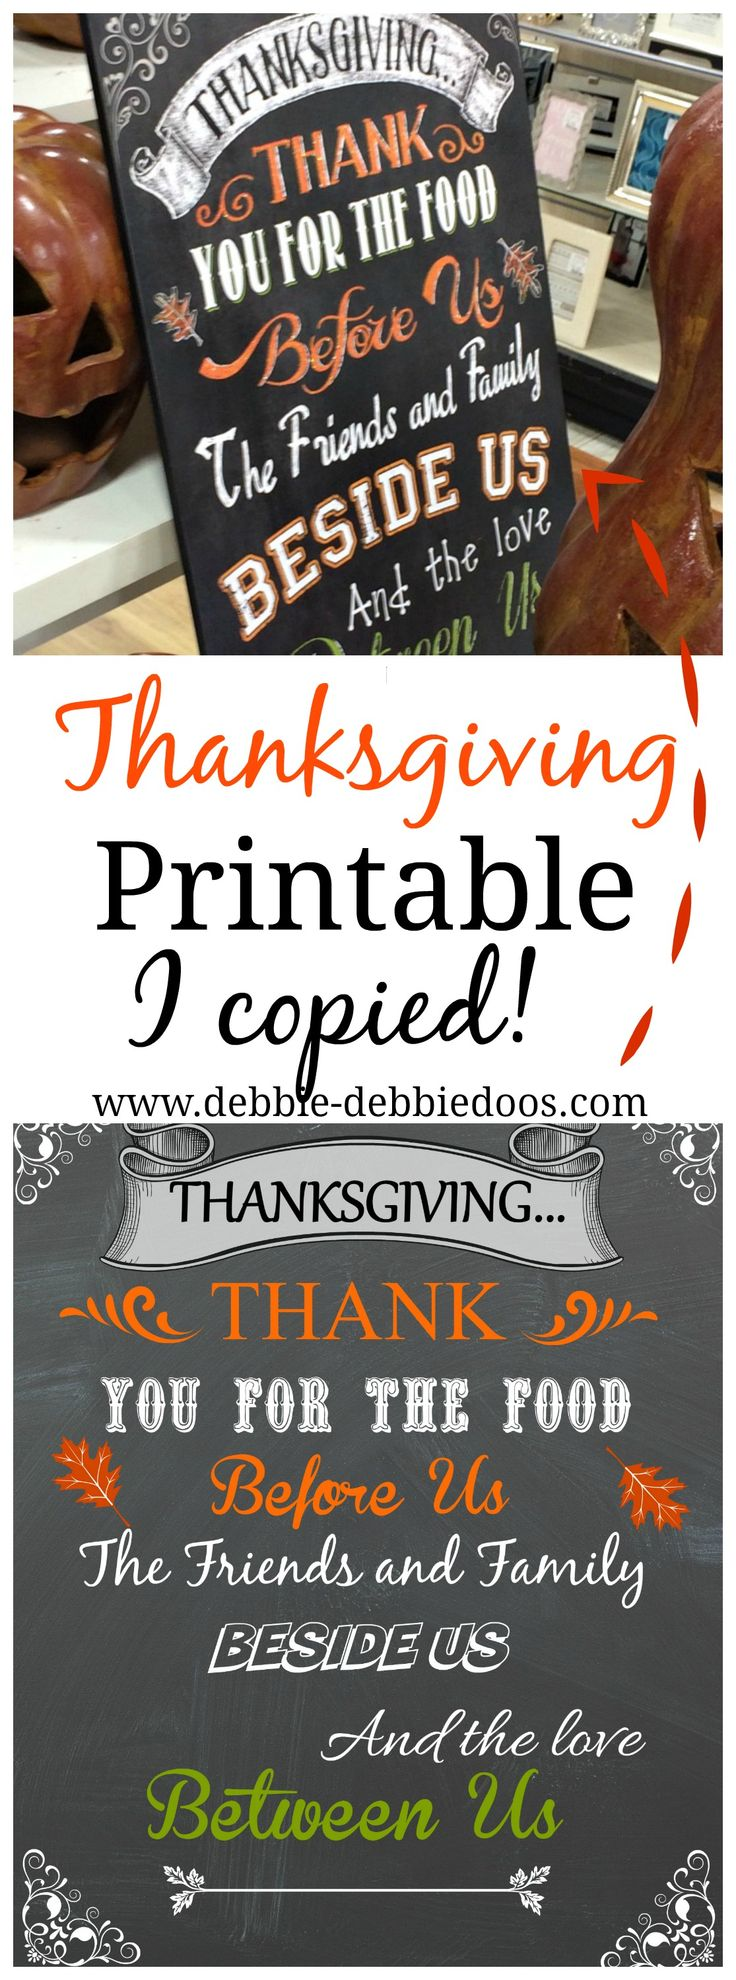 Thanksgiving printable.I found inspiration at Home Goods! Made it for us!:)